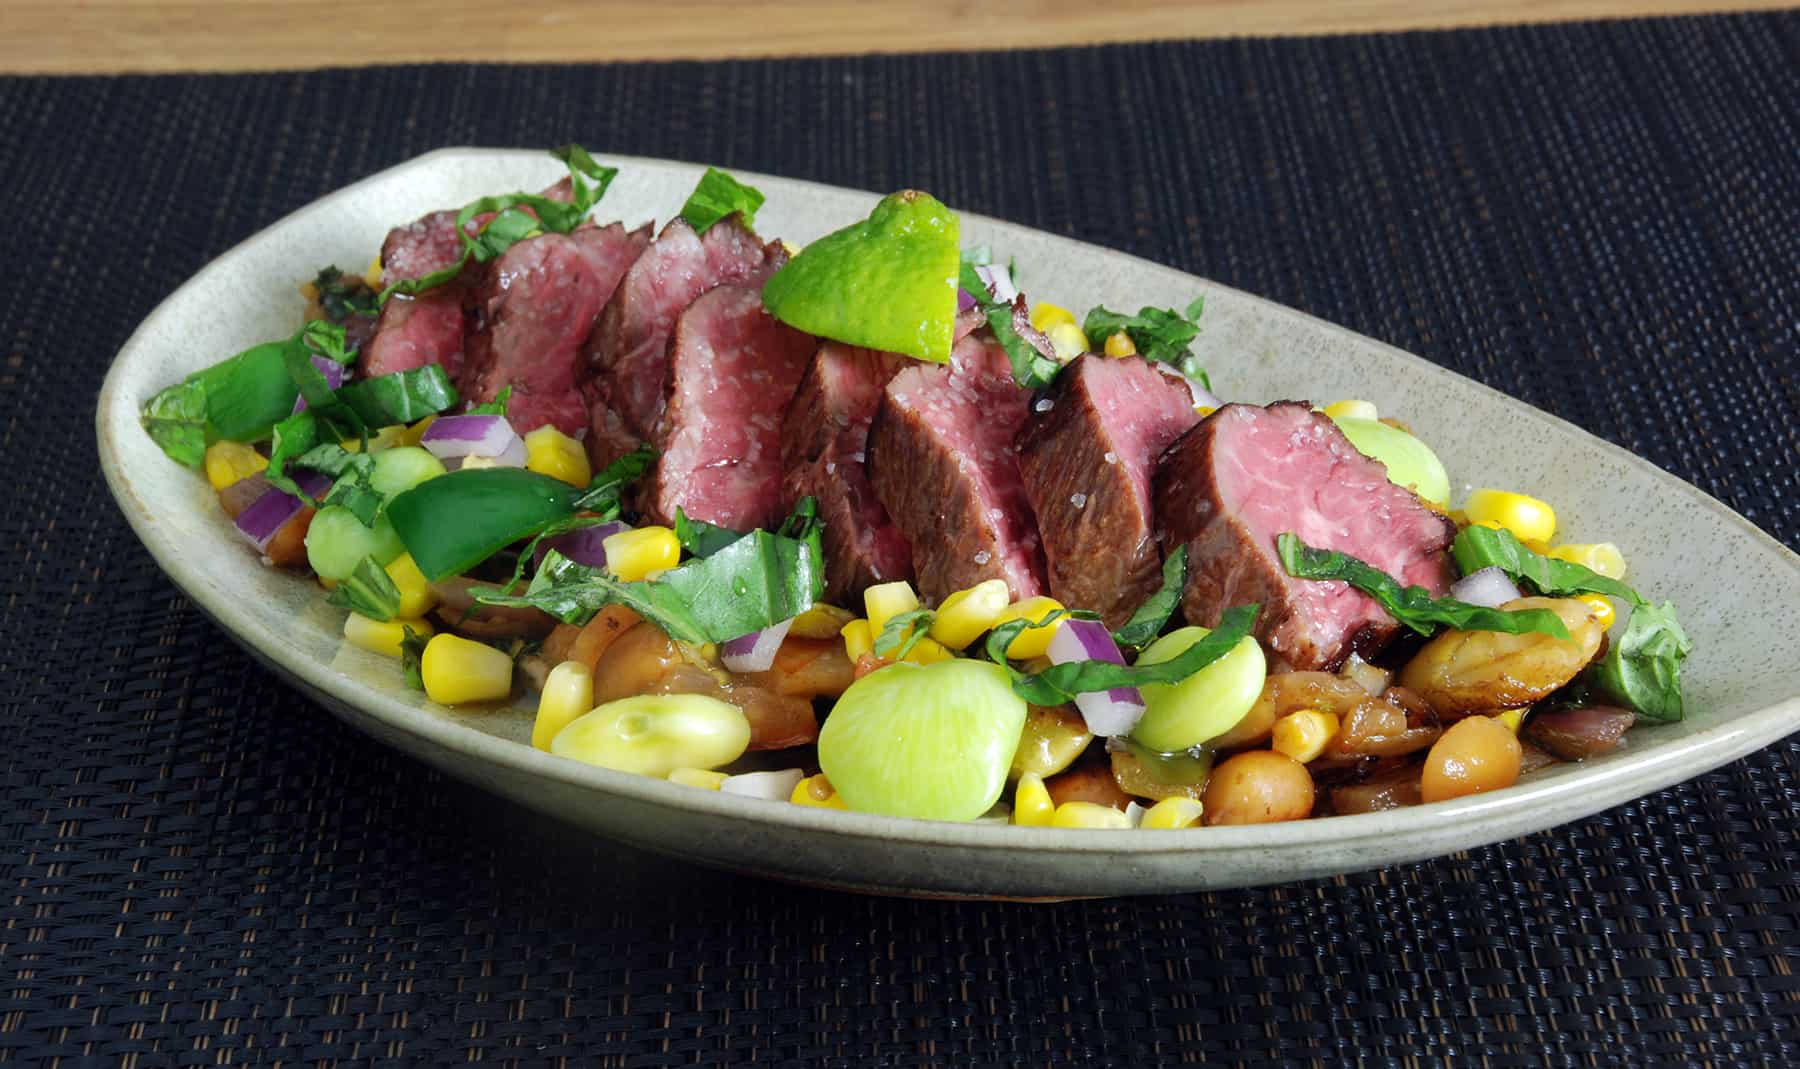 Sous Vide Hanger Steak Recipe with Succotash   Amazing Food Made Easy Sous vide hangar steak succotash